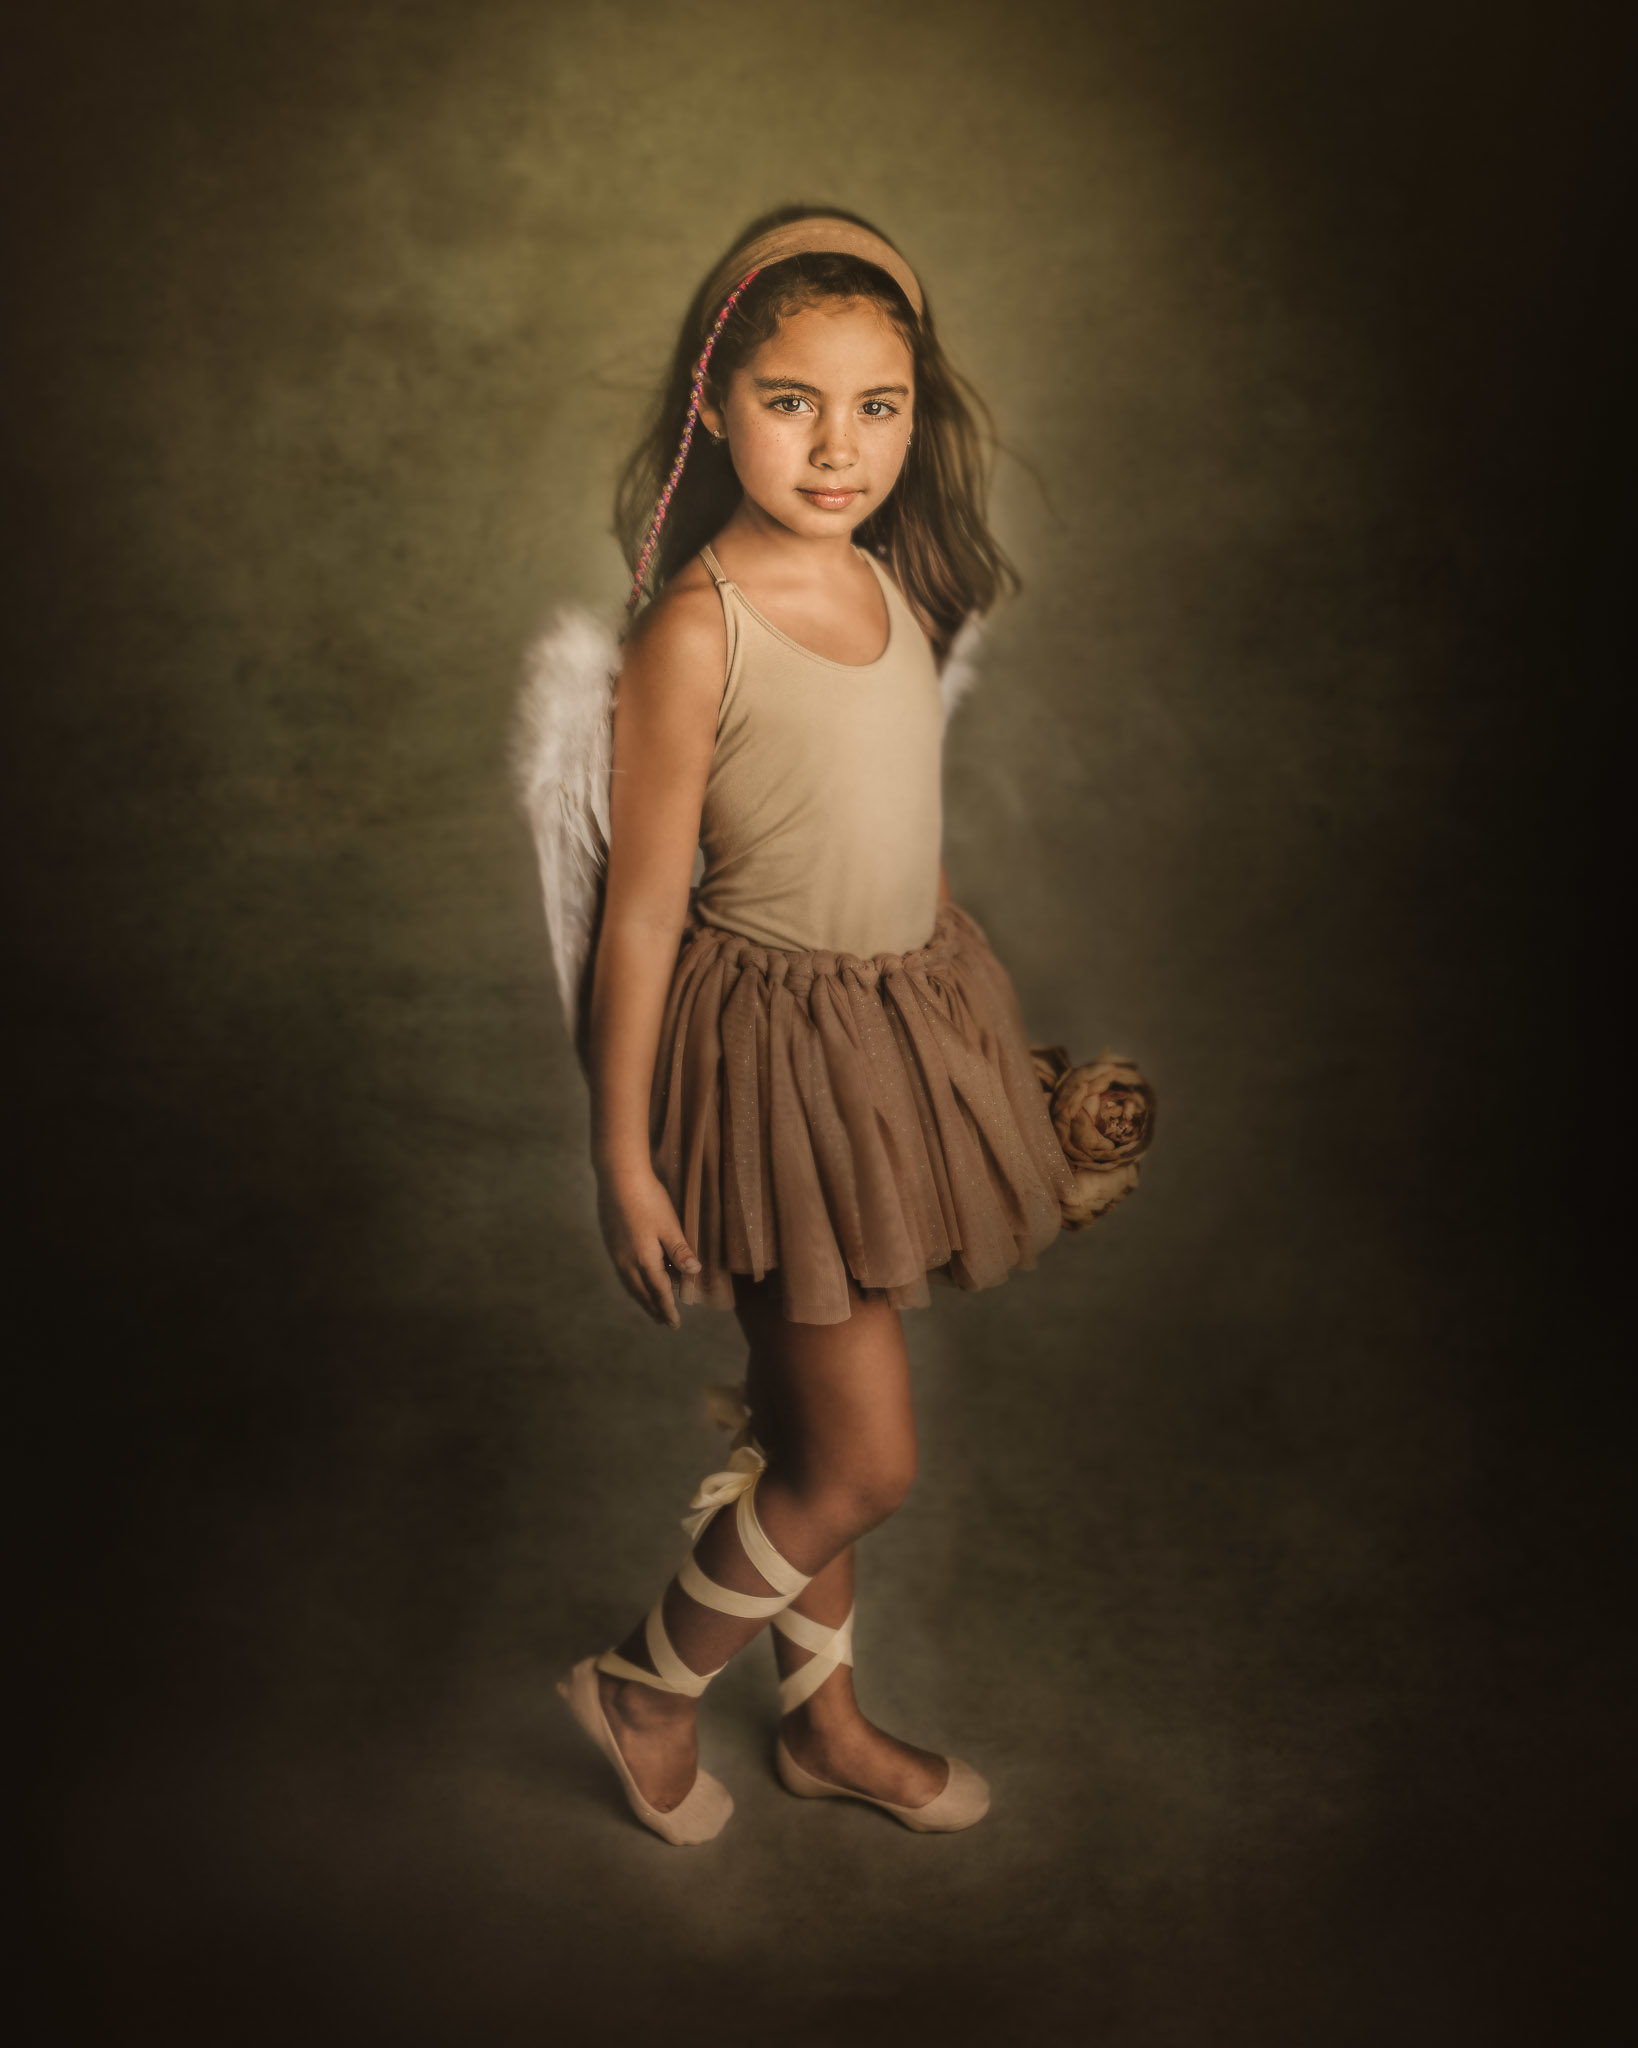 VICTORIA (7 AÑOS) – LITTLE ANGELS 2018